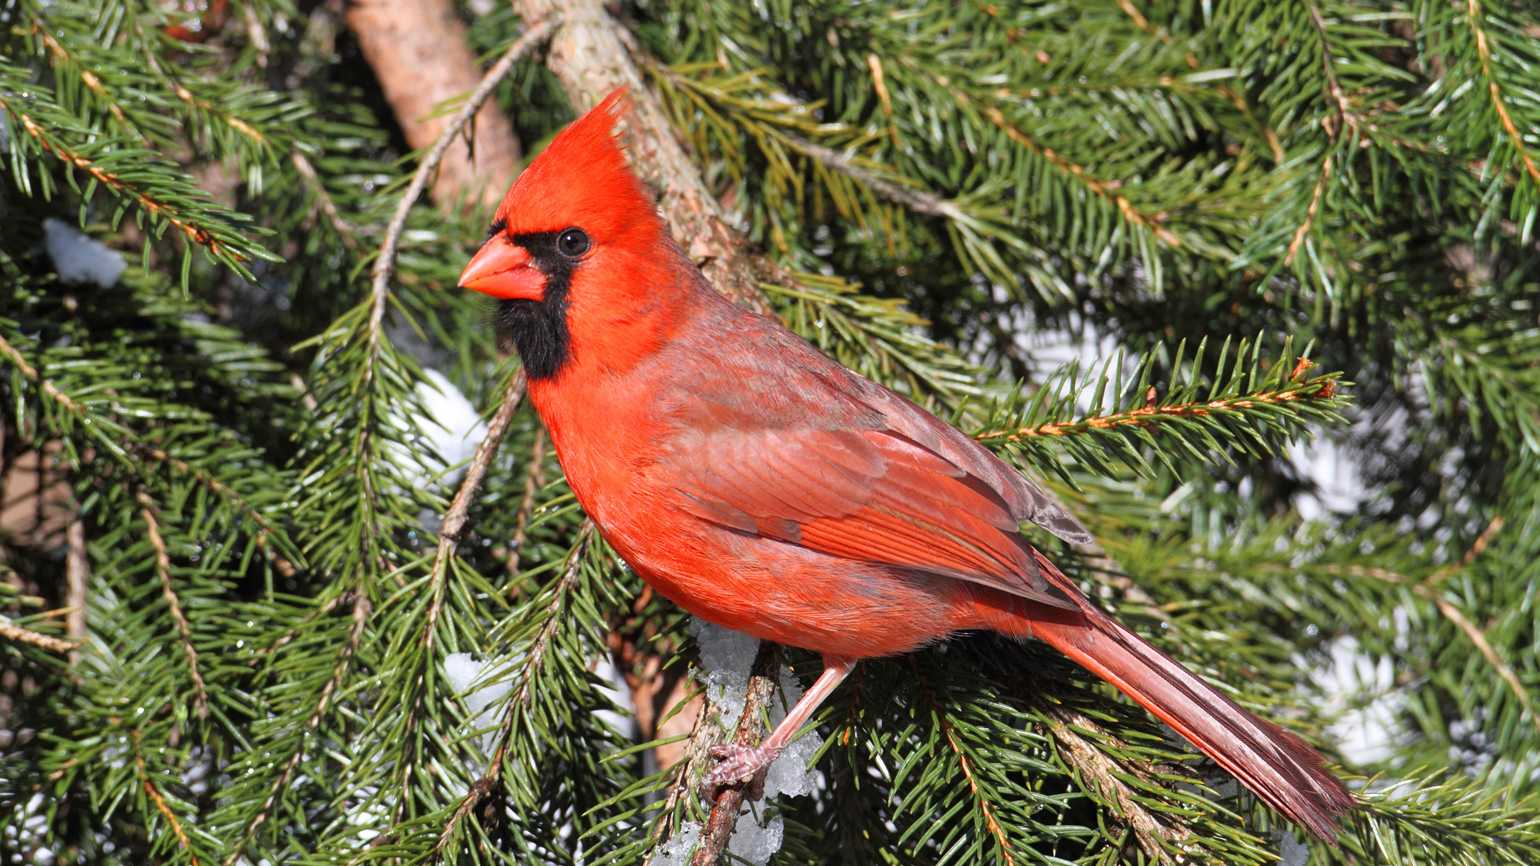 A Valentine red cardinal bird perched on a pine tree branch.